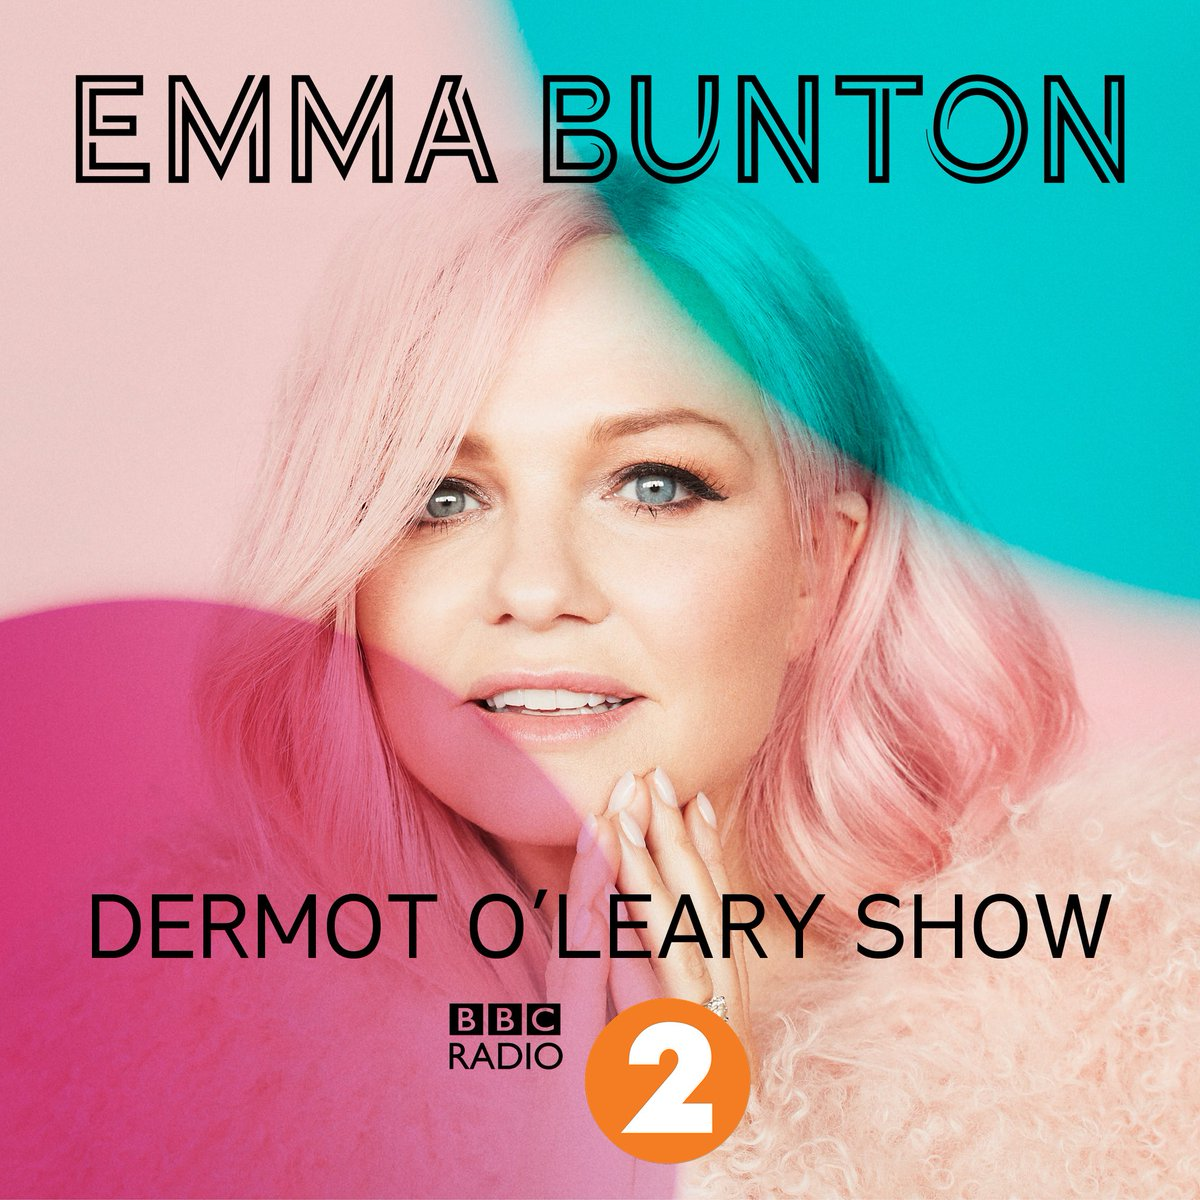 Tune into @BBCRadio2 NOW to hear @JadeJonesDMG and I perform live! https://t.co/FJXqDJVVr5